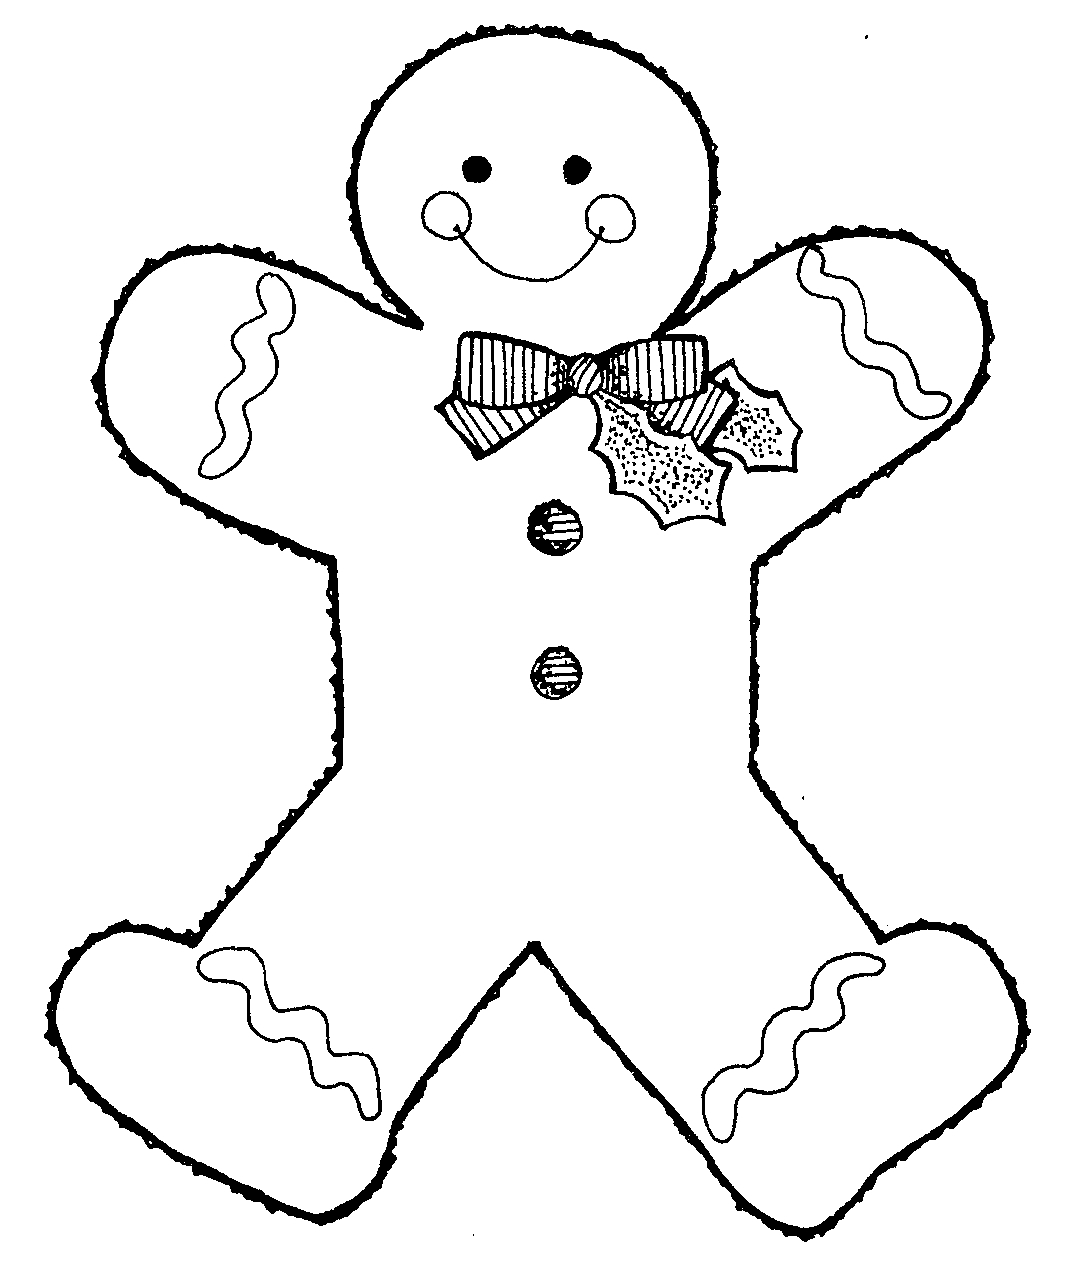 Uncategorized Gingerbread Man Color Sheet free printable gingerbread man coloring pages for kids page